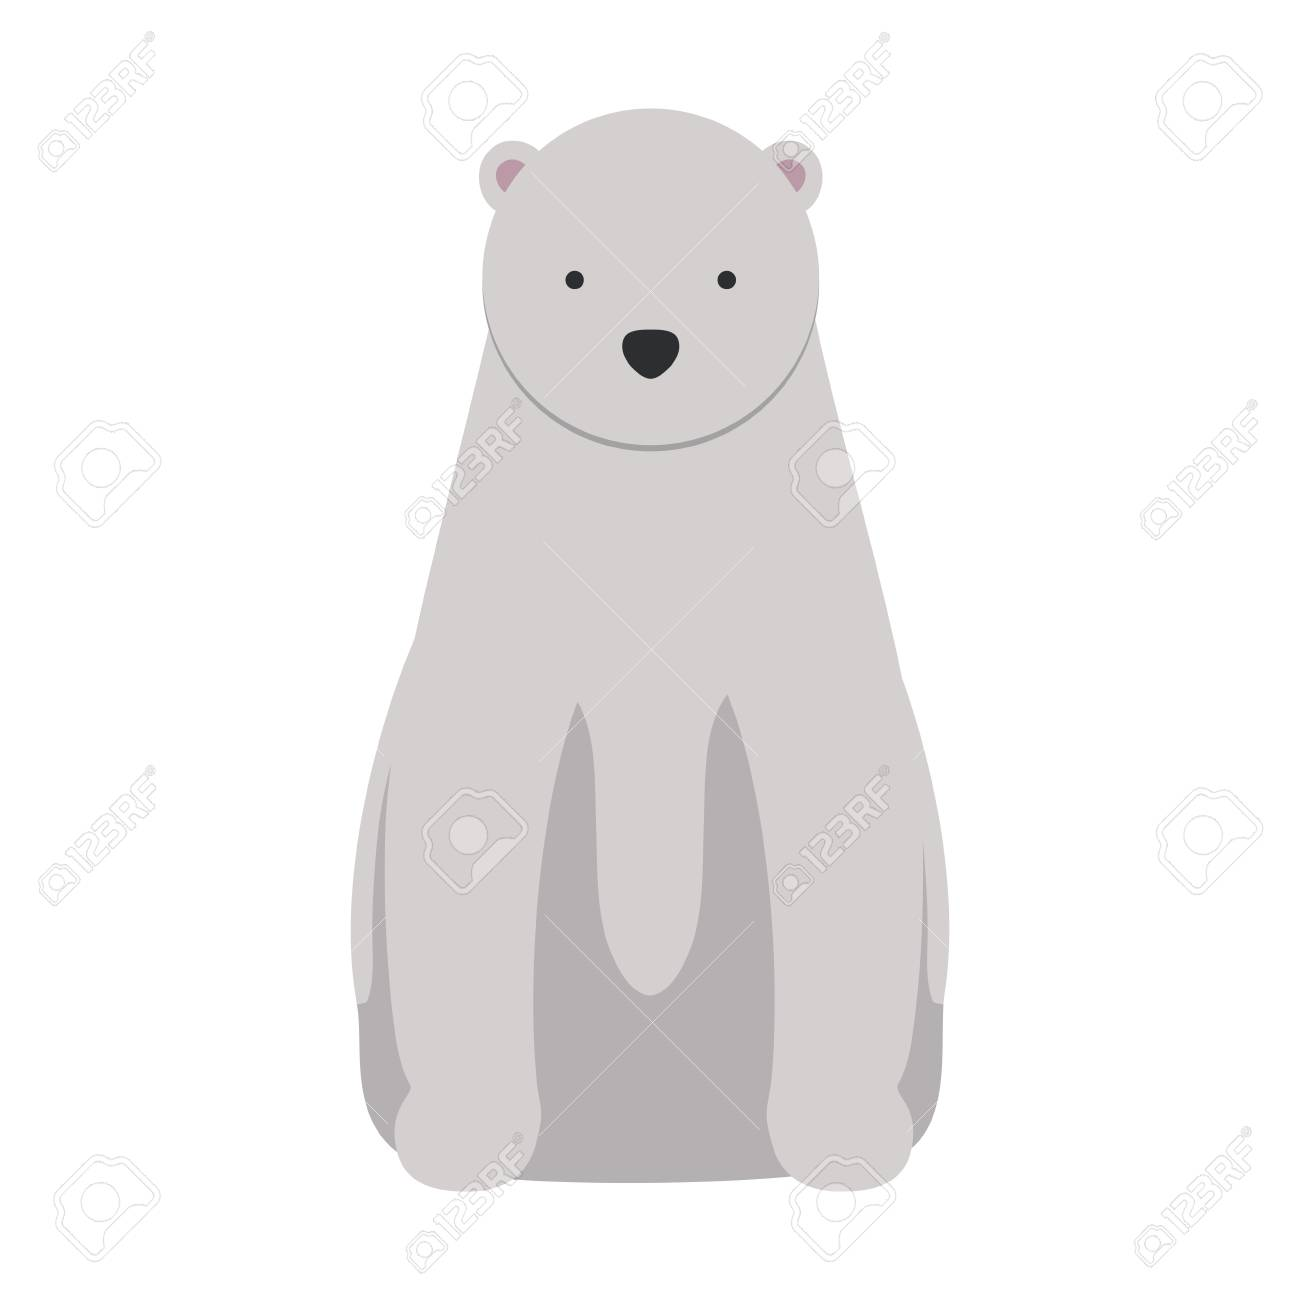 wild polar bear icon vector illustration design royalty free cliparts vectors and stock illustration image 101000098 wild polar bear icon vector illustration design